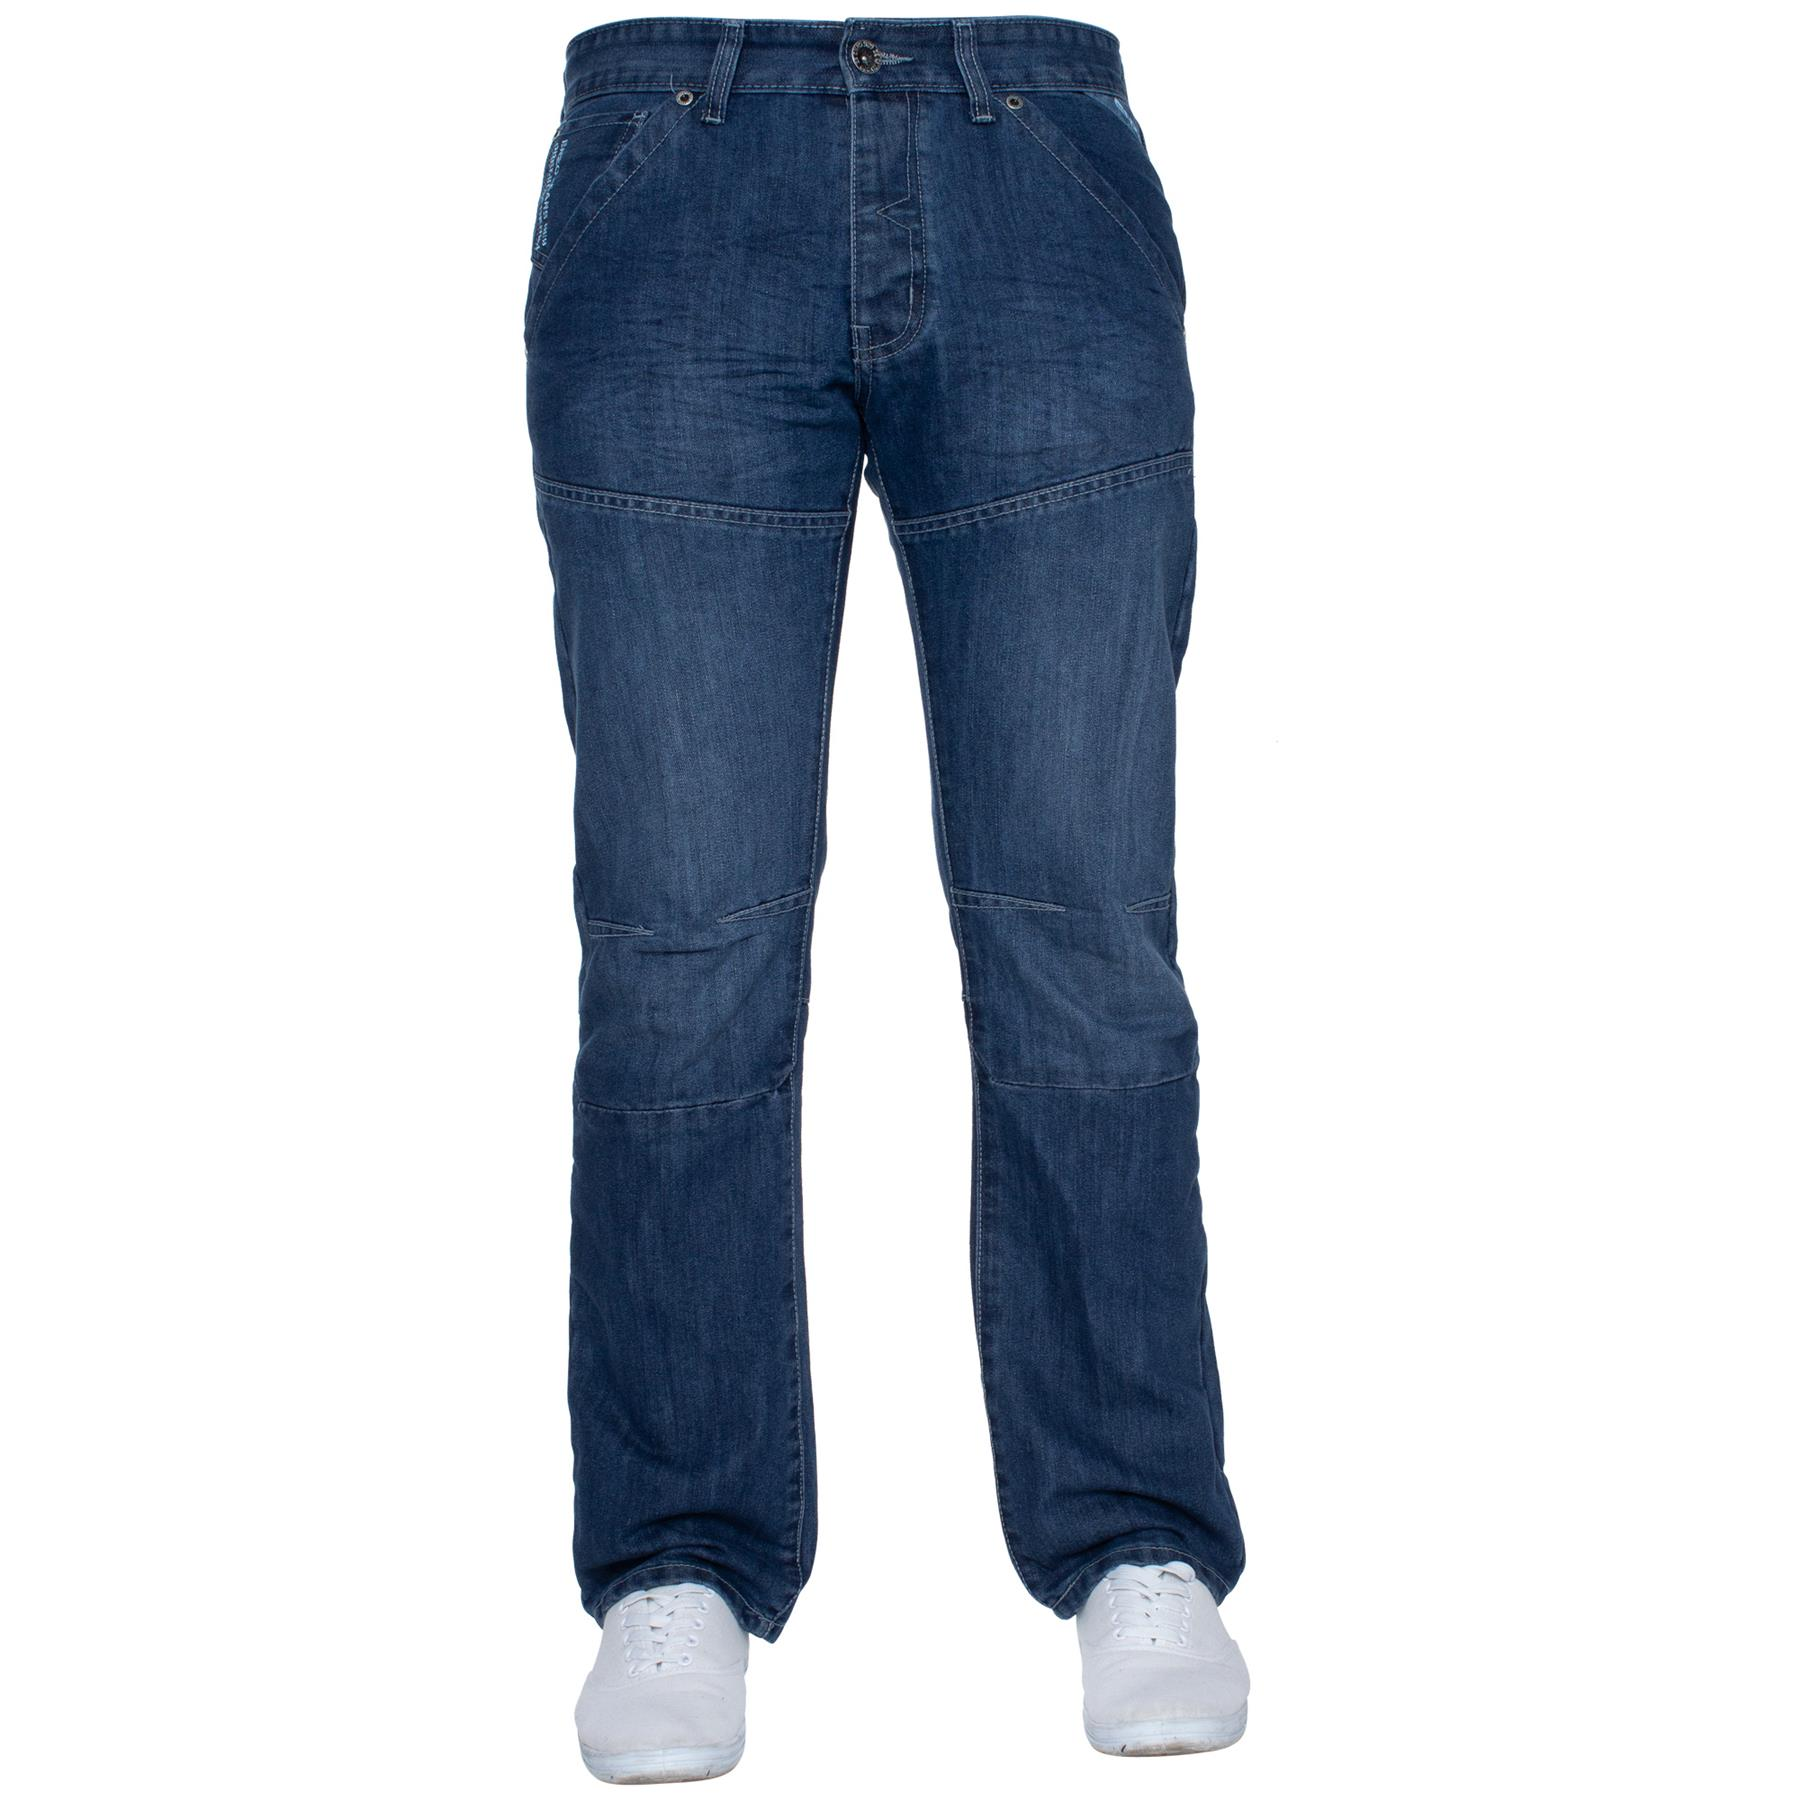 Enzo-Mens-Jeans-Big-Tall-Leg-King-Size-Denim-Pants-Chino-Trousers-Waist-44-034-60-034 miniature 100